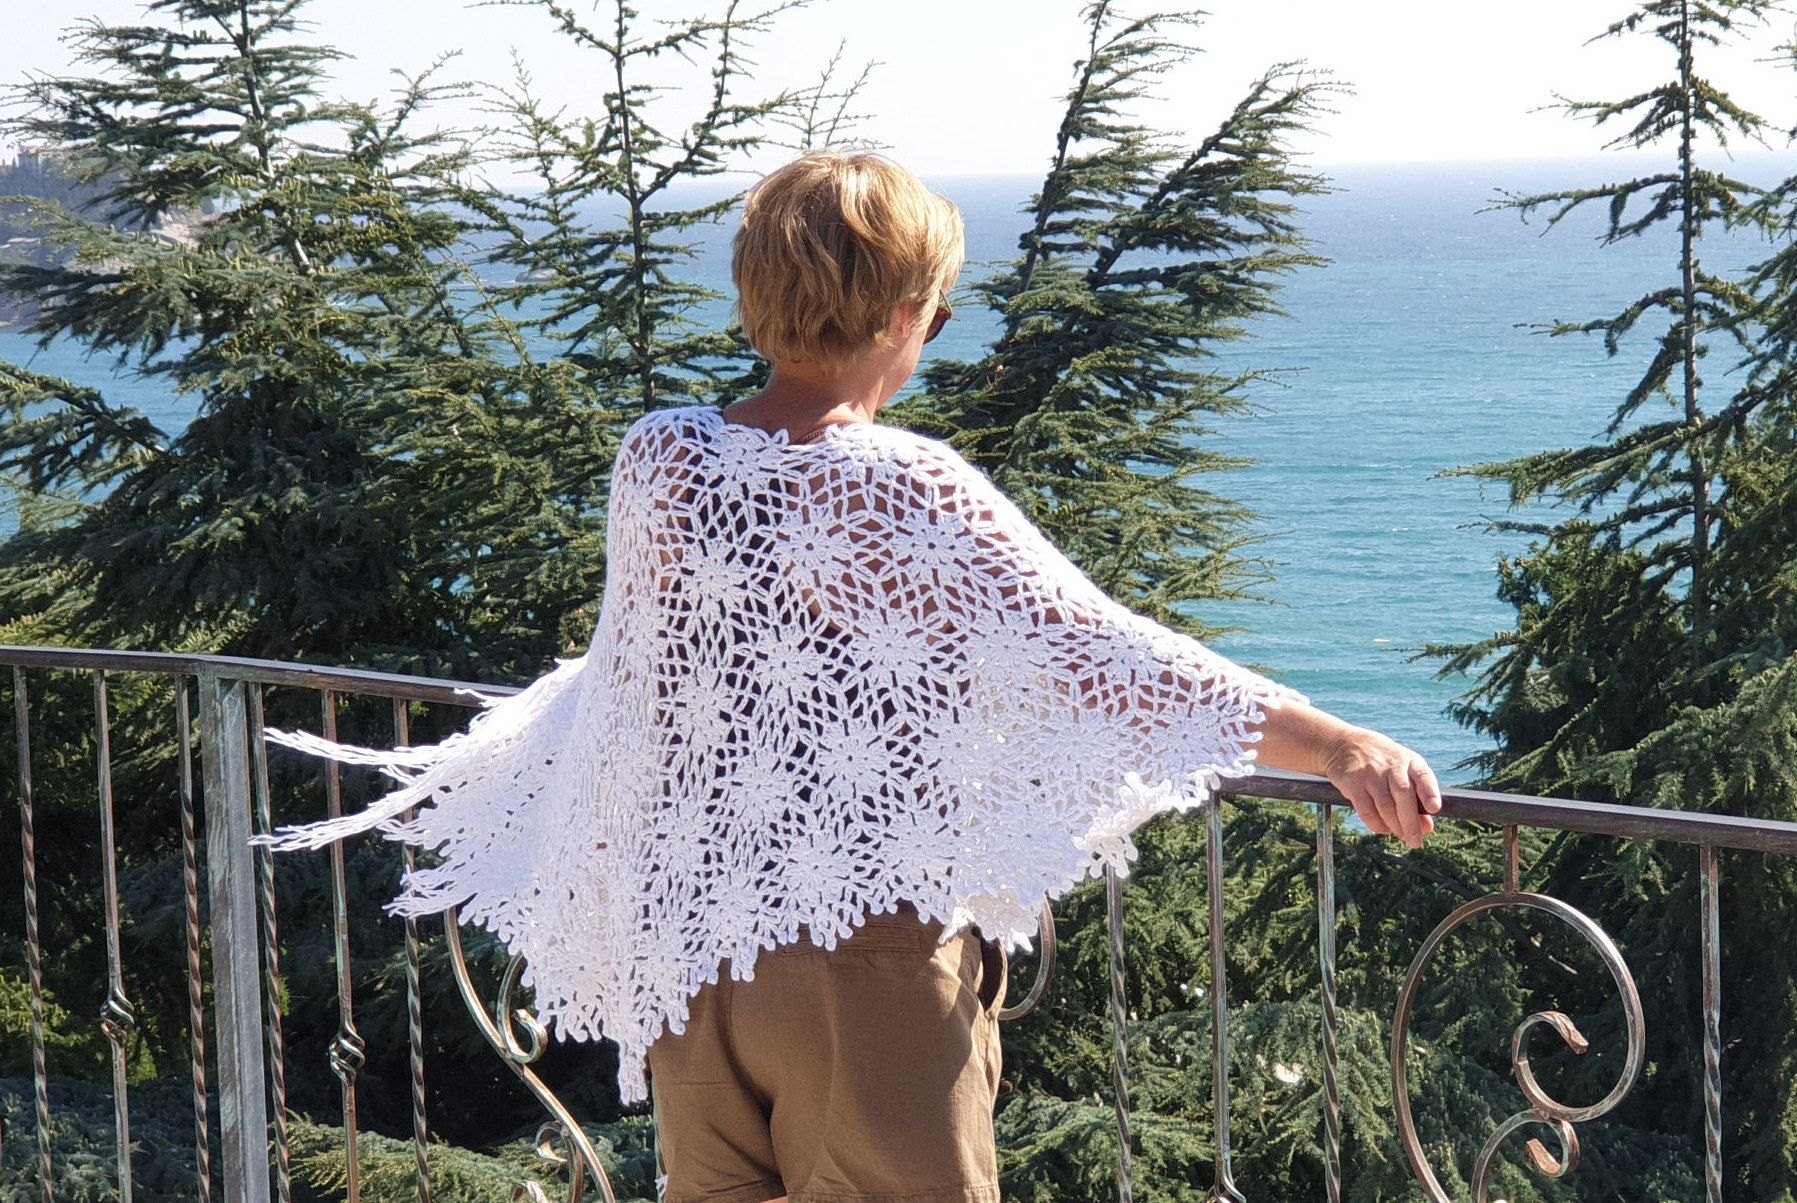 Photo of Poncho Hand knitted woman viscose/kidmohair Poncho cozy white crochet openwork style knit scarf knit shrug-ready to ship